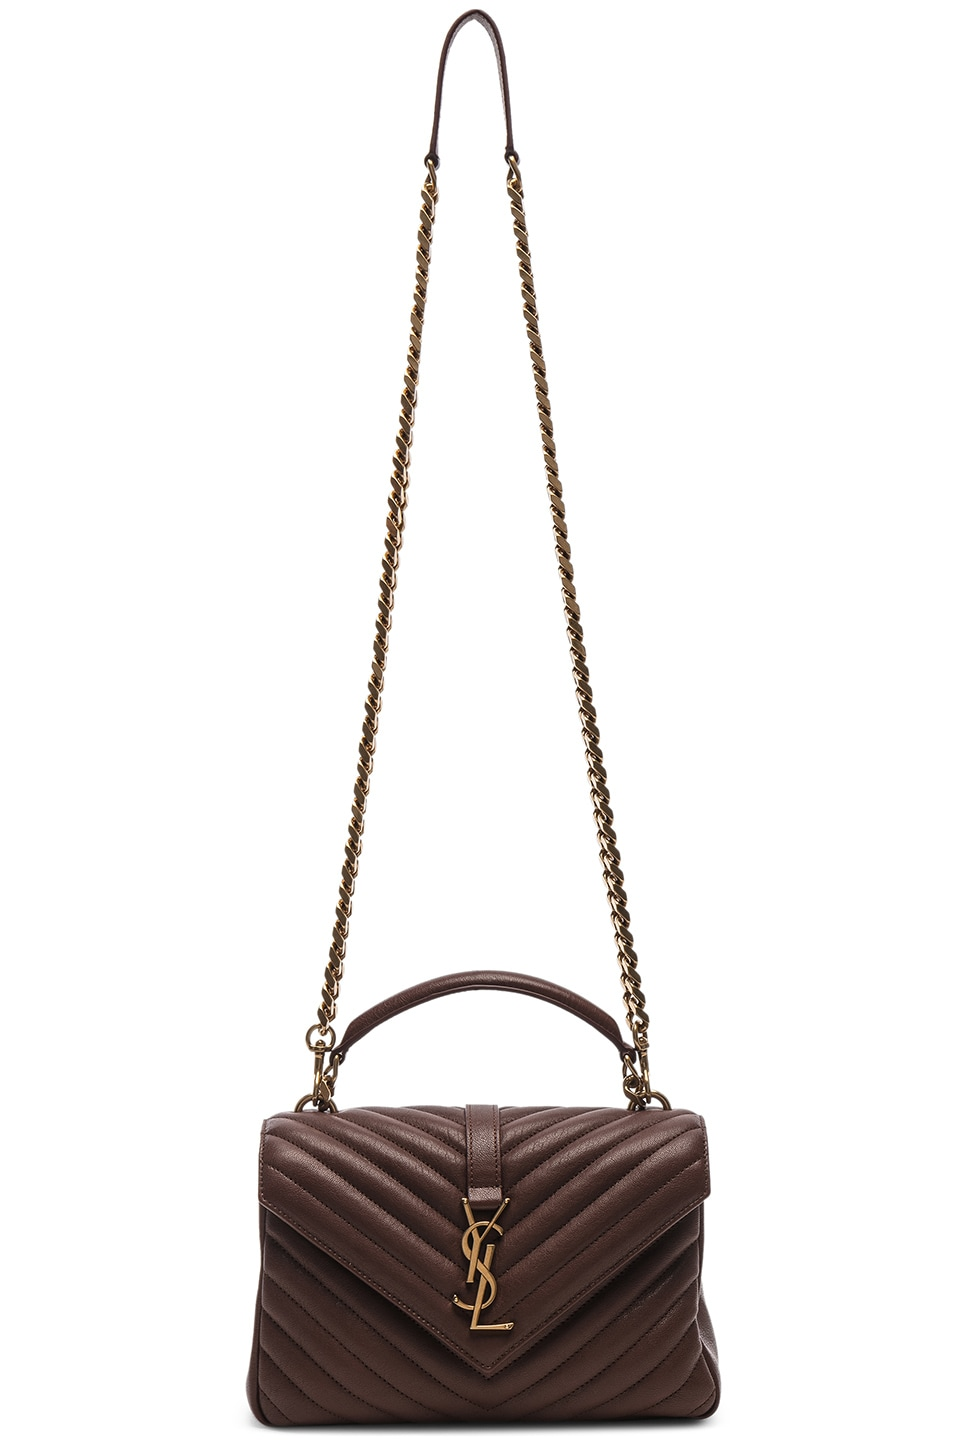 Image 6 of Saint Laurent Medium Monogramme College Bag in Old Brandy